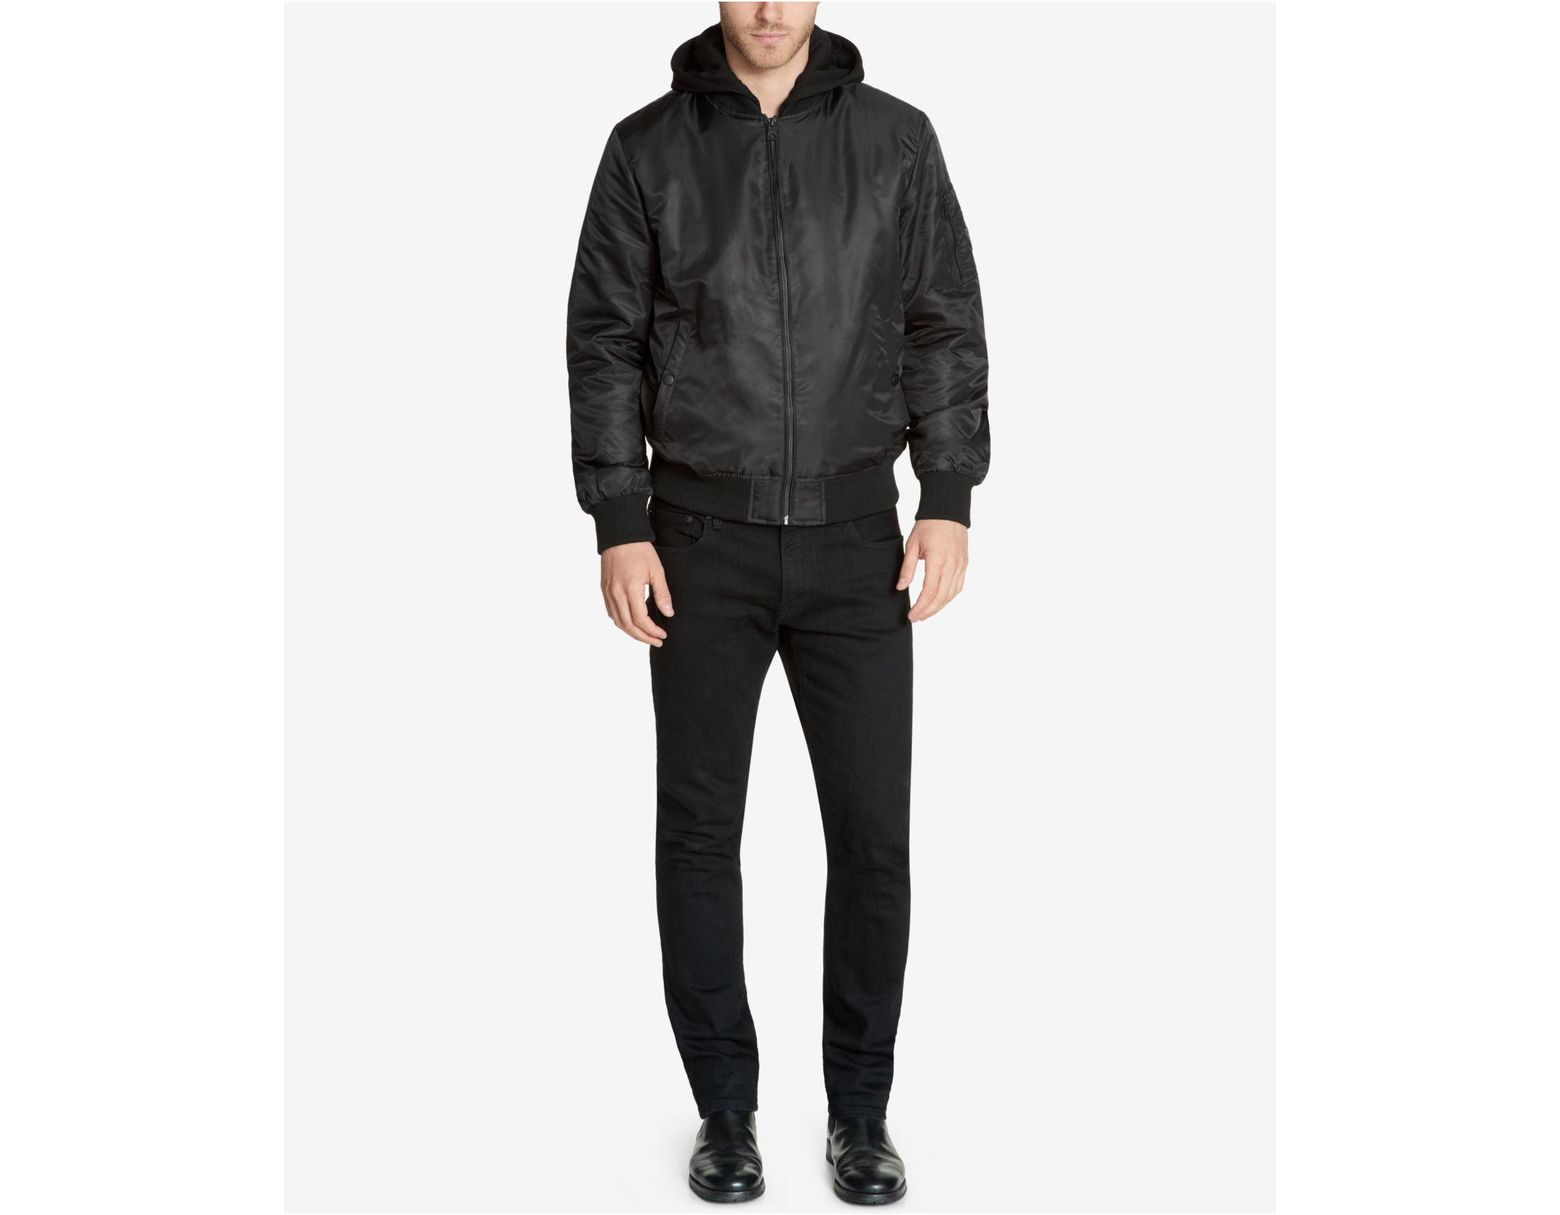 cdd80d69c Black Men's Bomber Jacket With Removable Hooded Inset